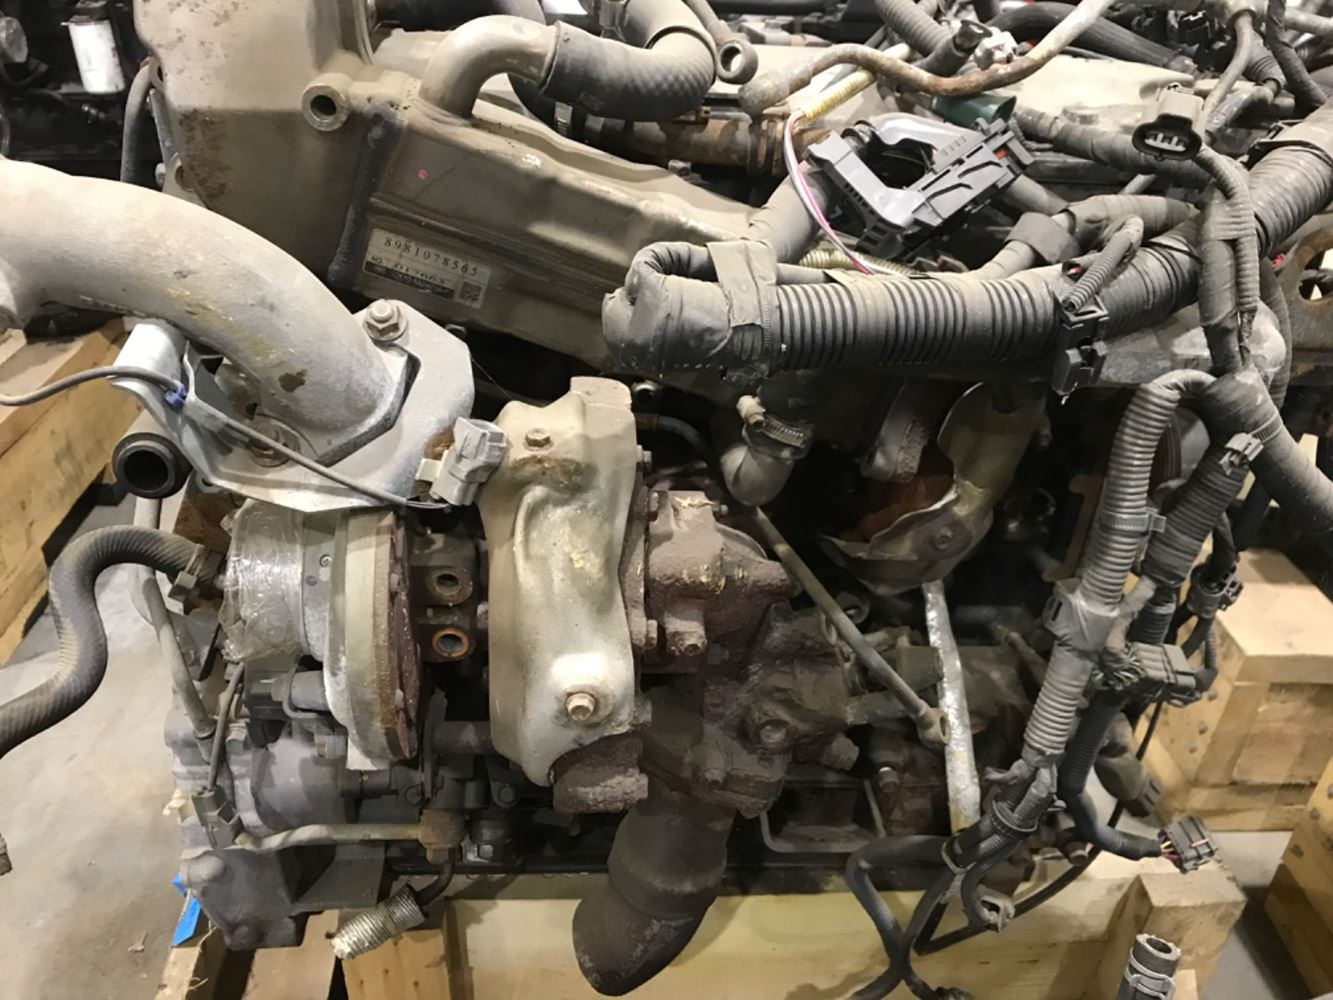 2014 ISUZU 4HK1-TC ENGINE ASSEMBLY TRUCK PARTS #679855